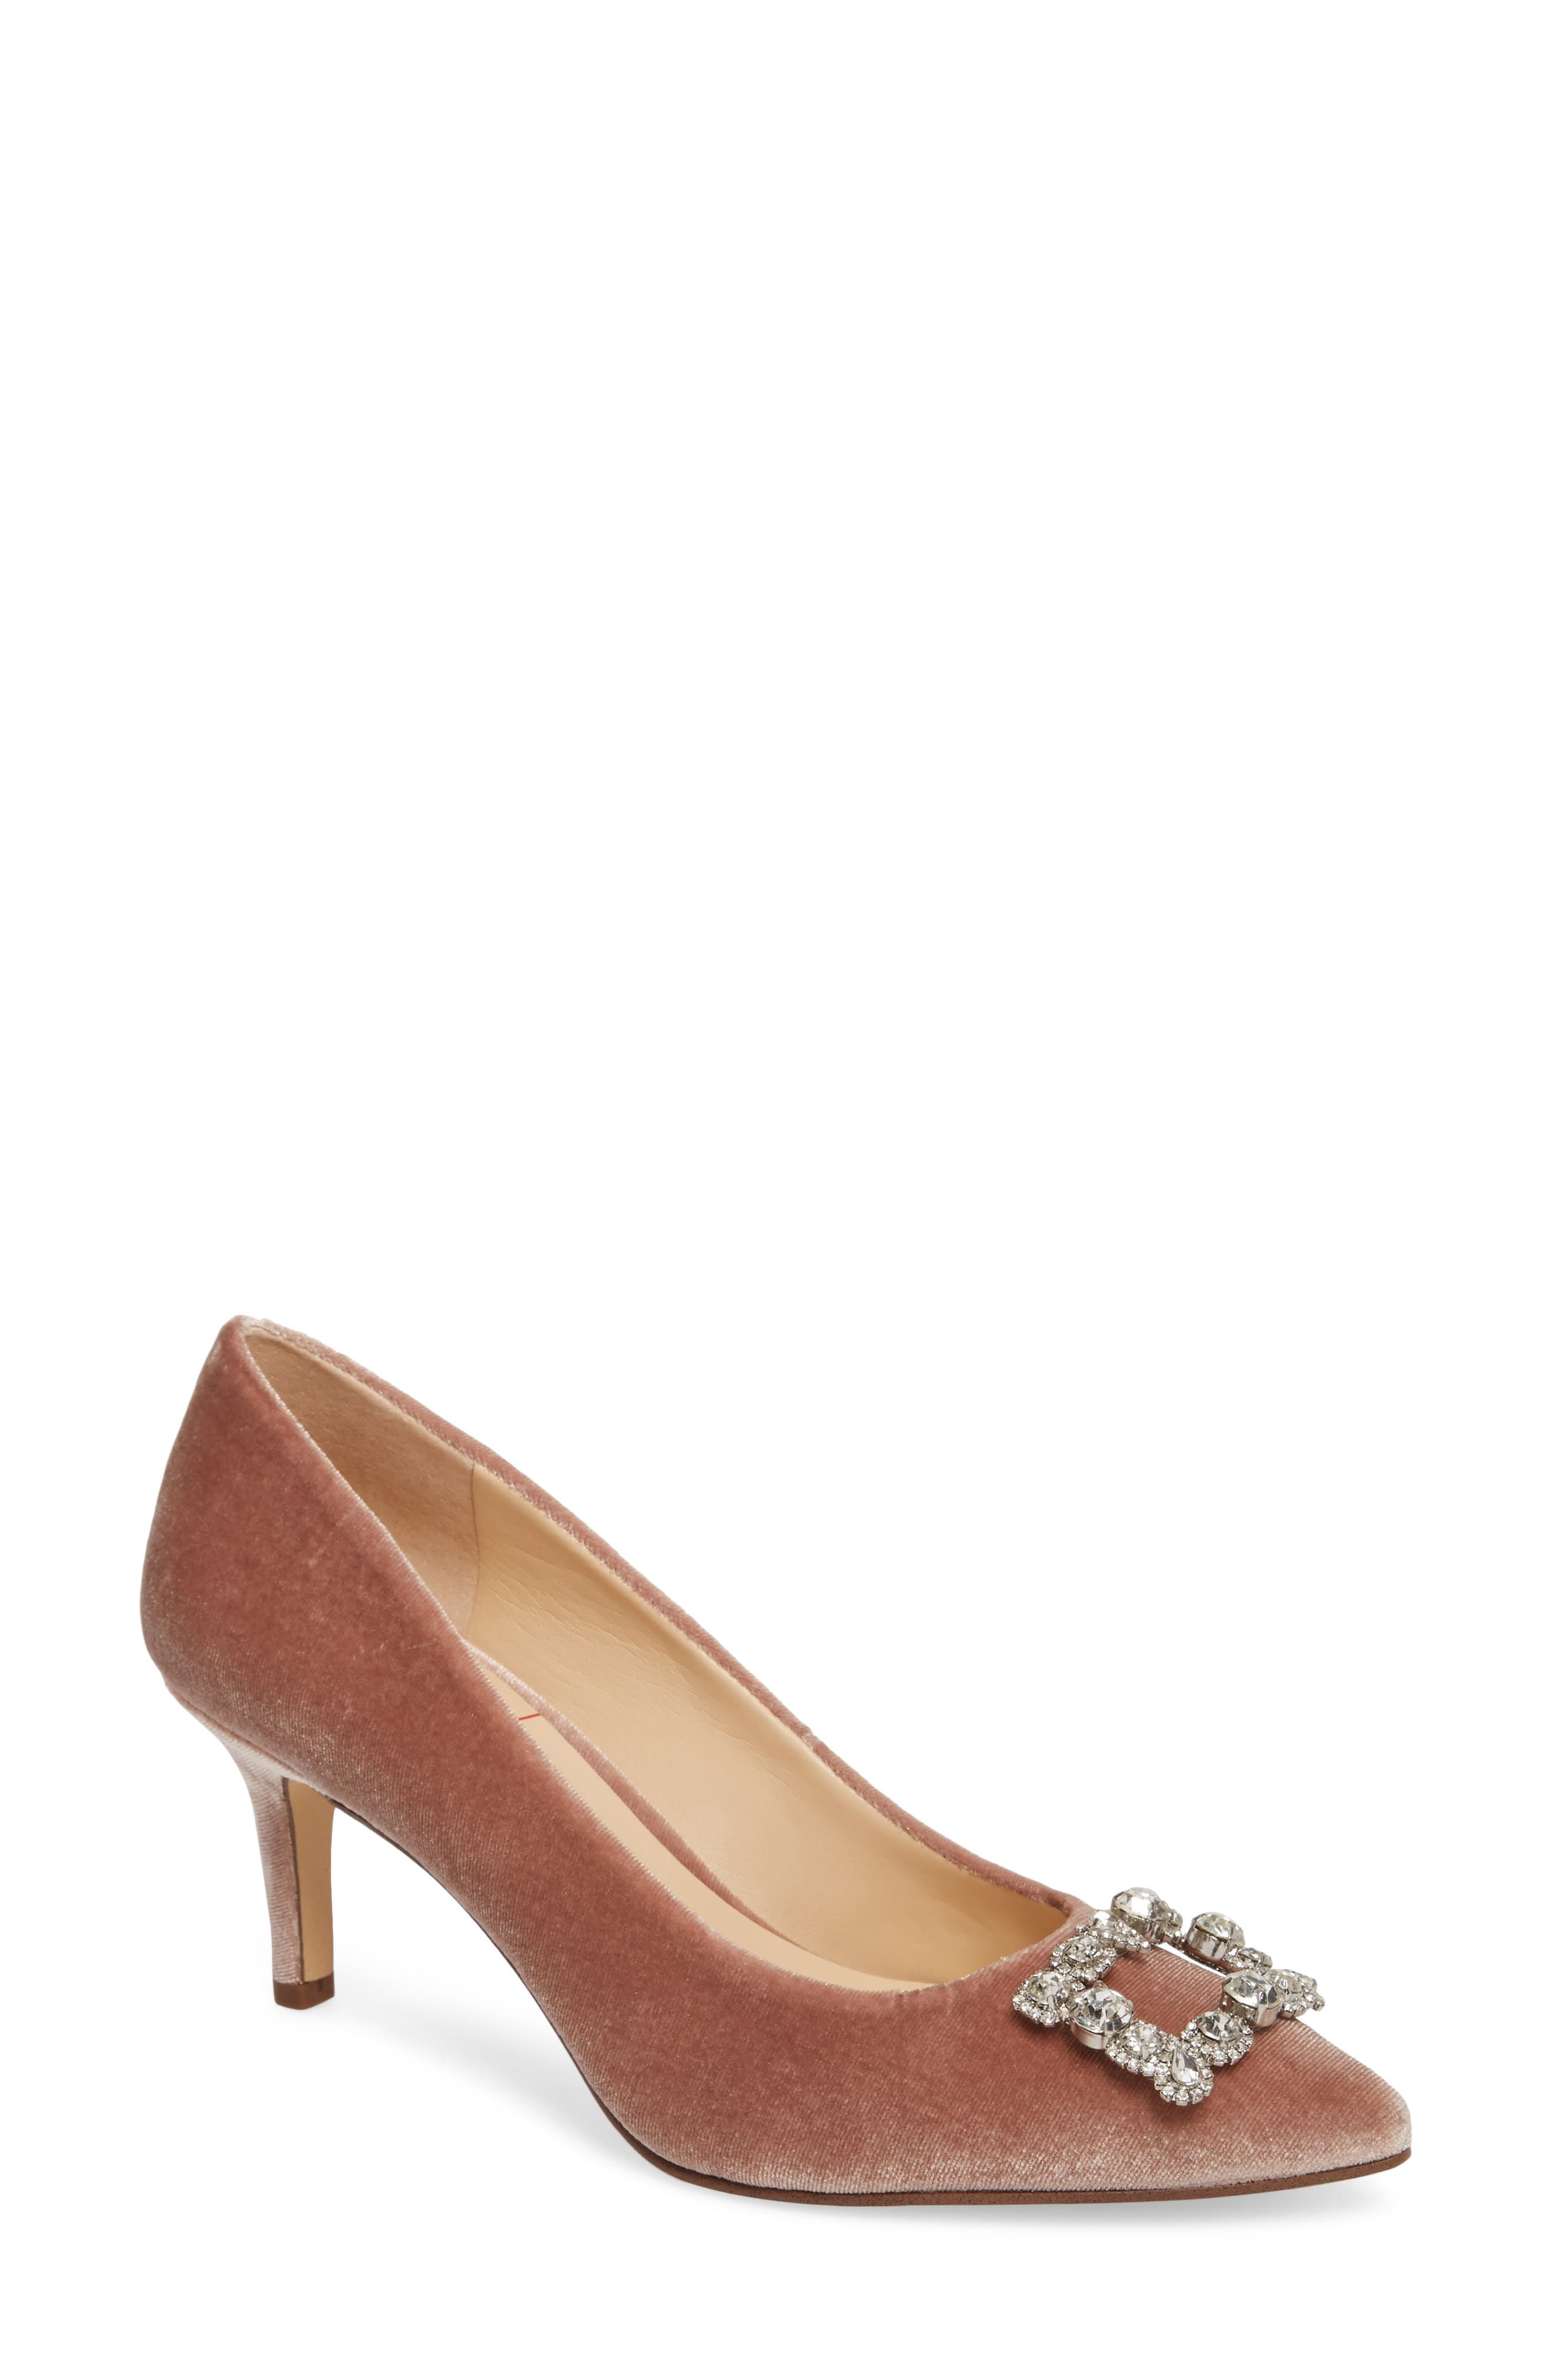 Edilina Crystal Buckle Velvet Pump,                             Main thumbnail 1, color,                             Mahogany Rose